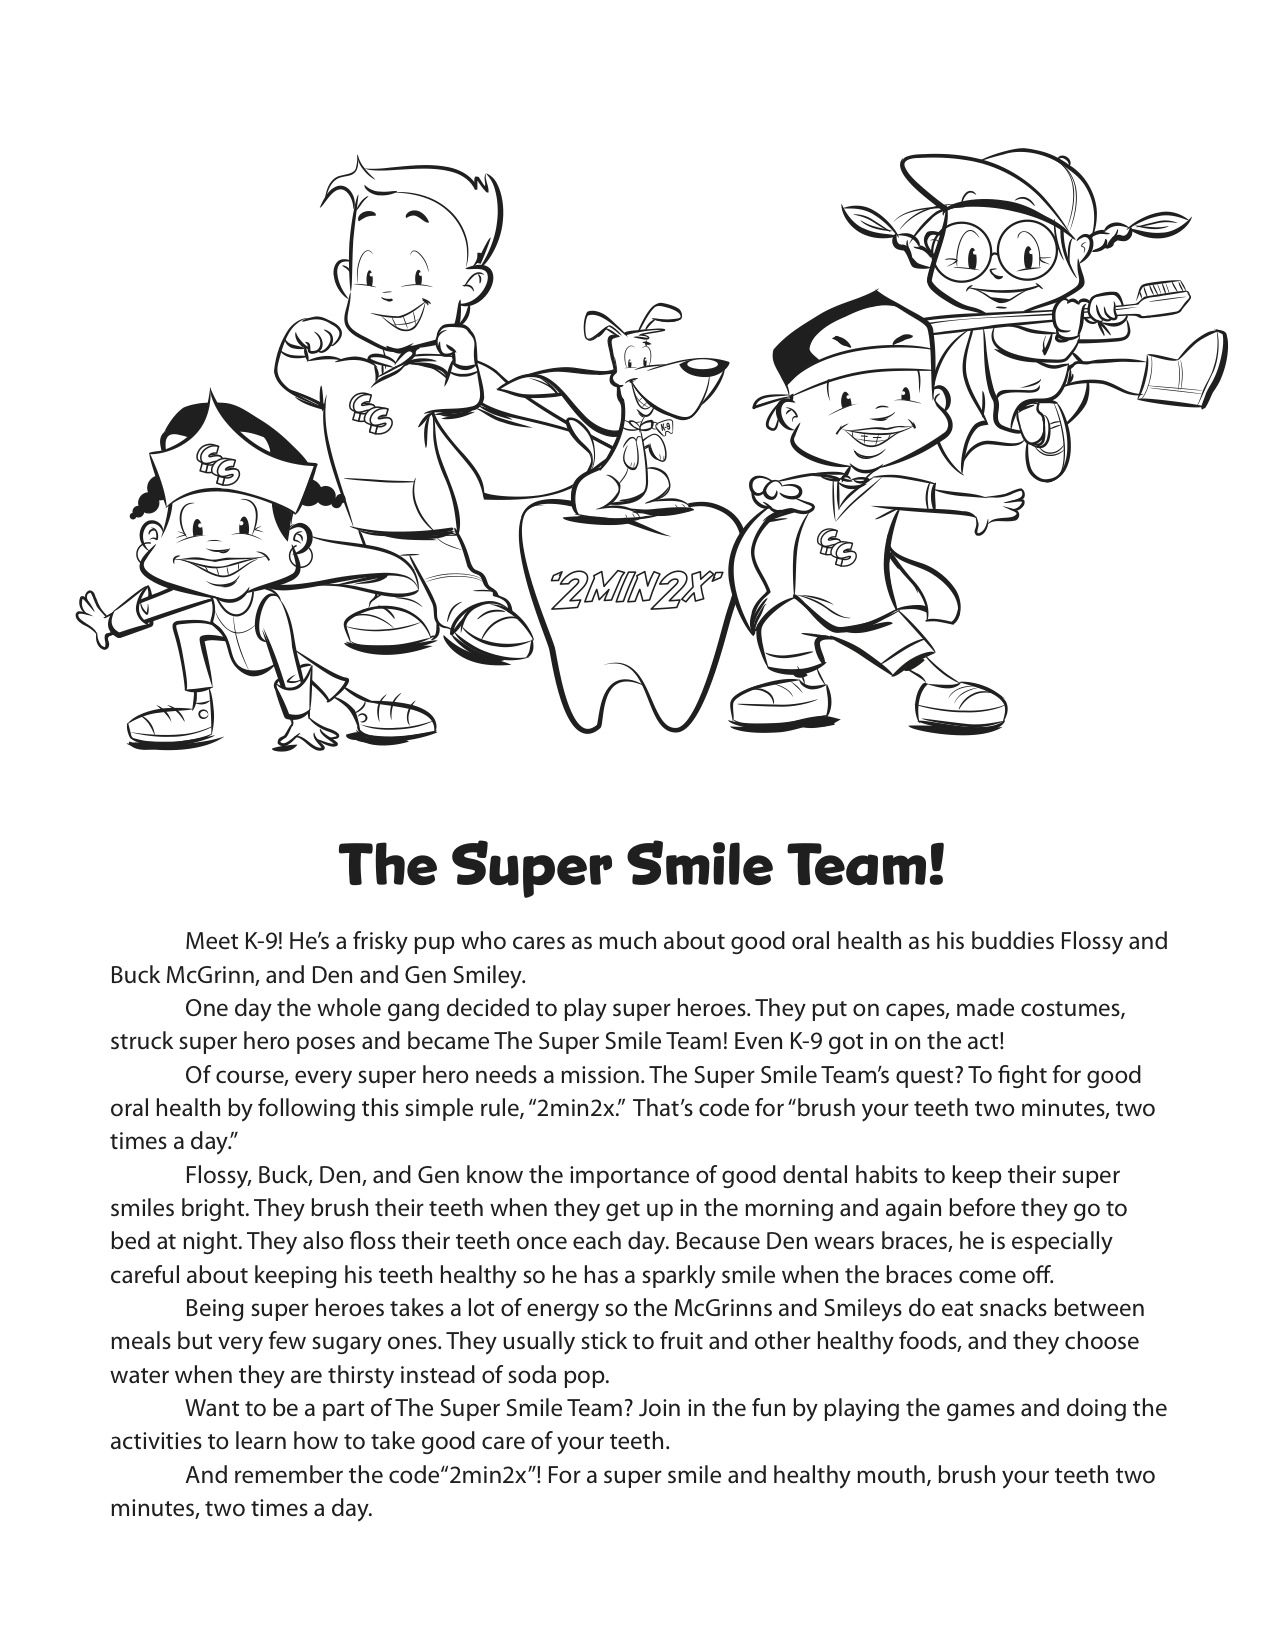 Learn All About The Super Smile Team On This Coloring